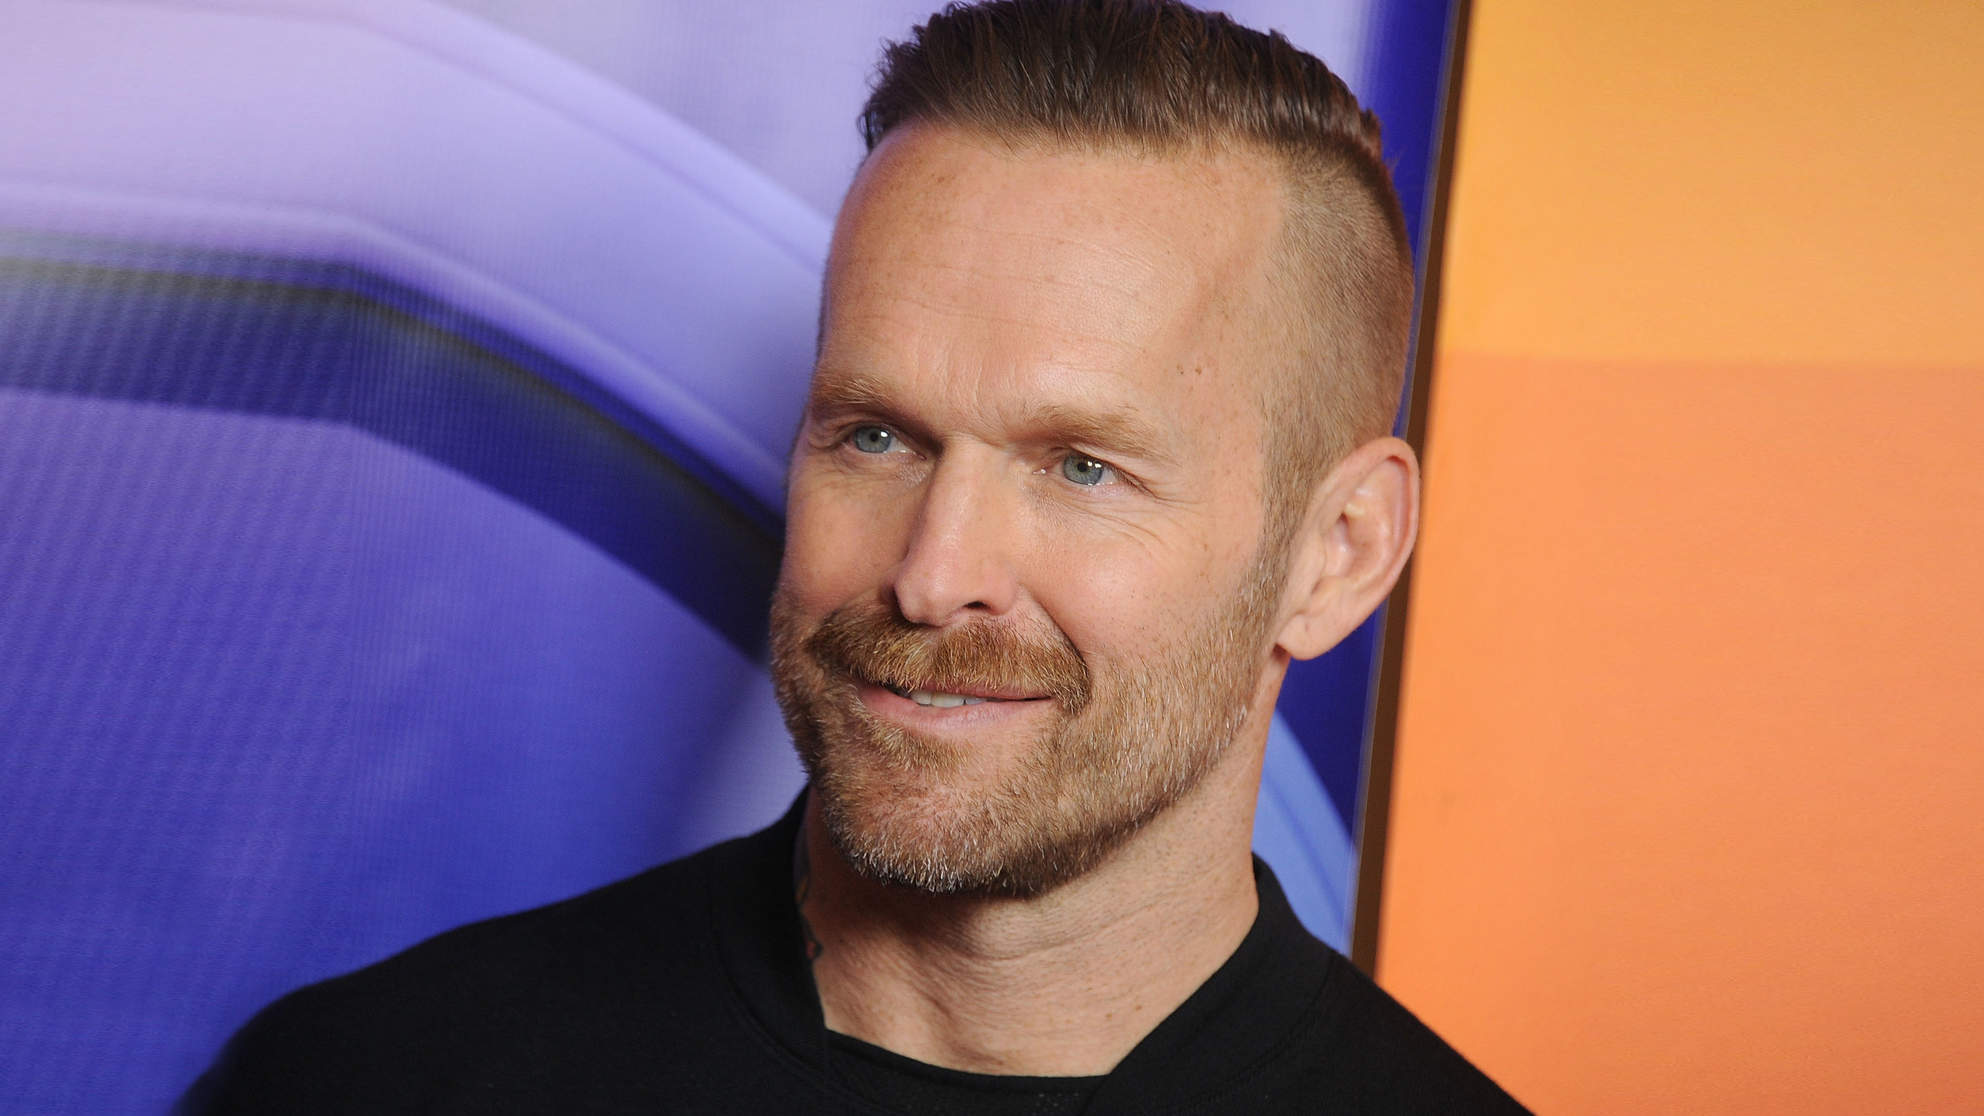 Bob Harper Does Burpees 3 Months After Heart Attack: 'I'm Getting Closer to Coming Back'